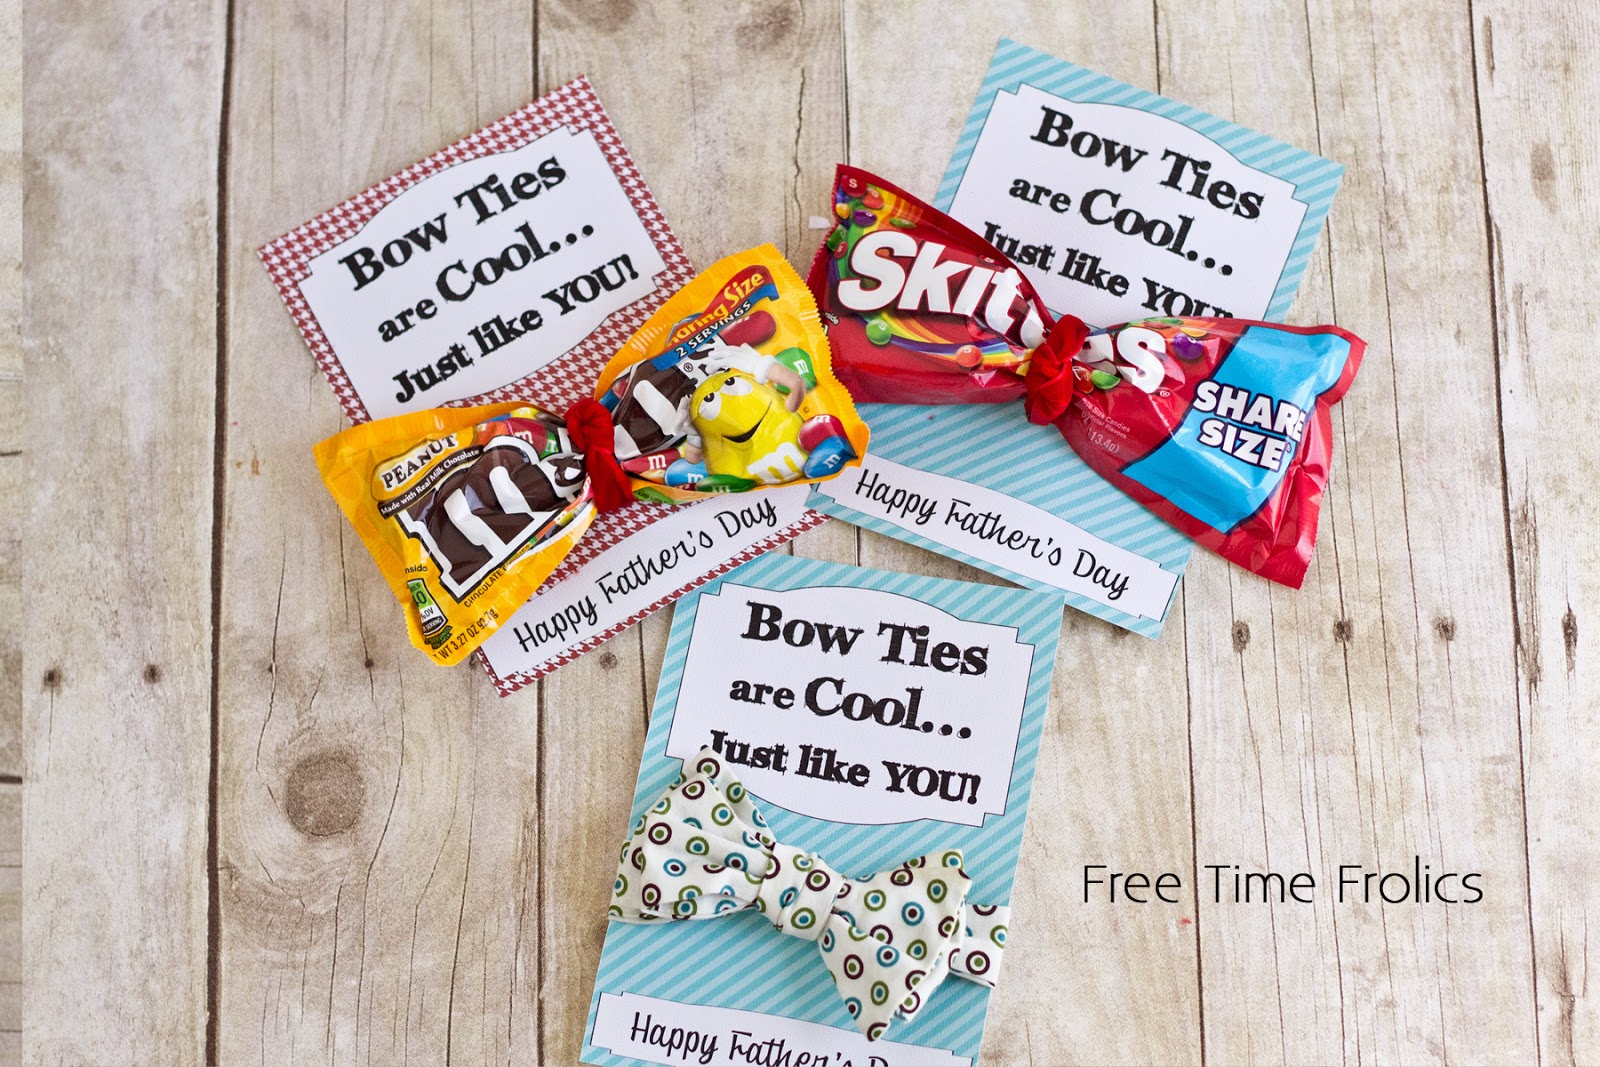 Dr who fathers day printable candy bow tie www.freetimefrolics.com #fathersday #drWho